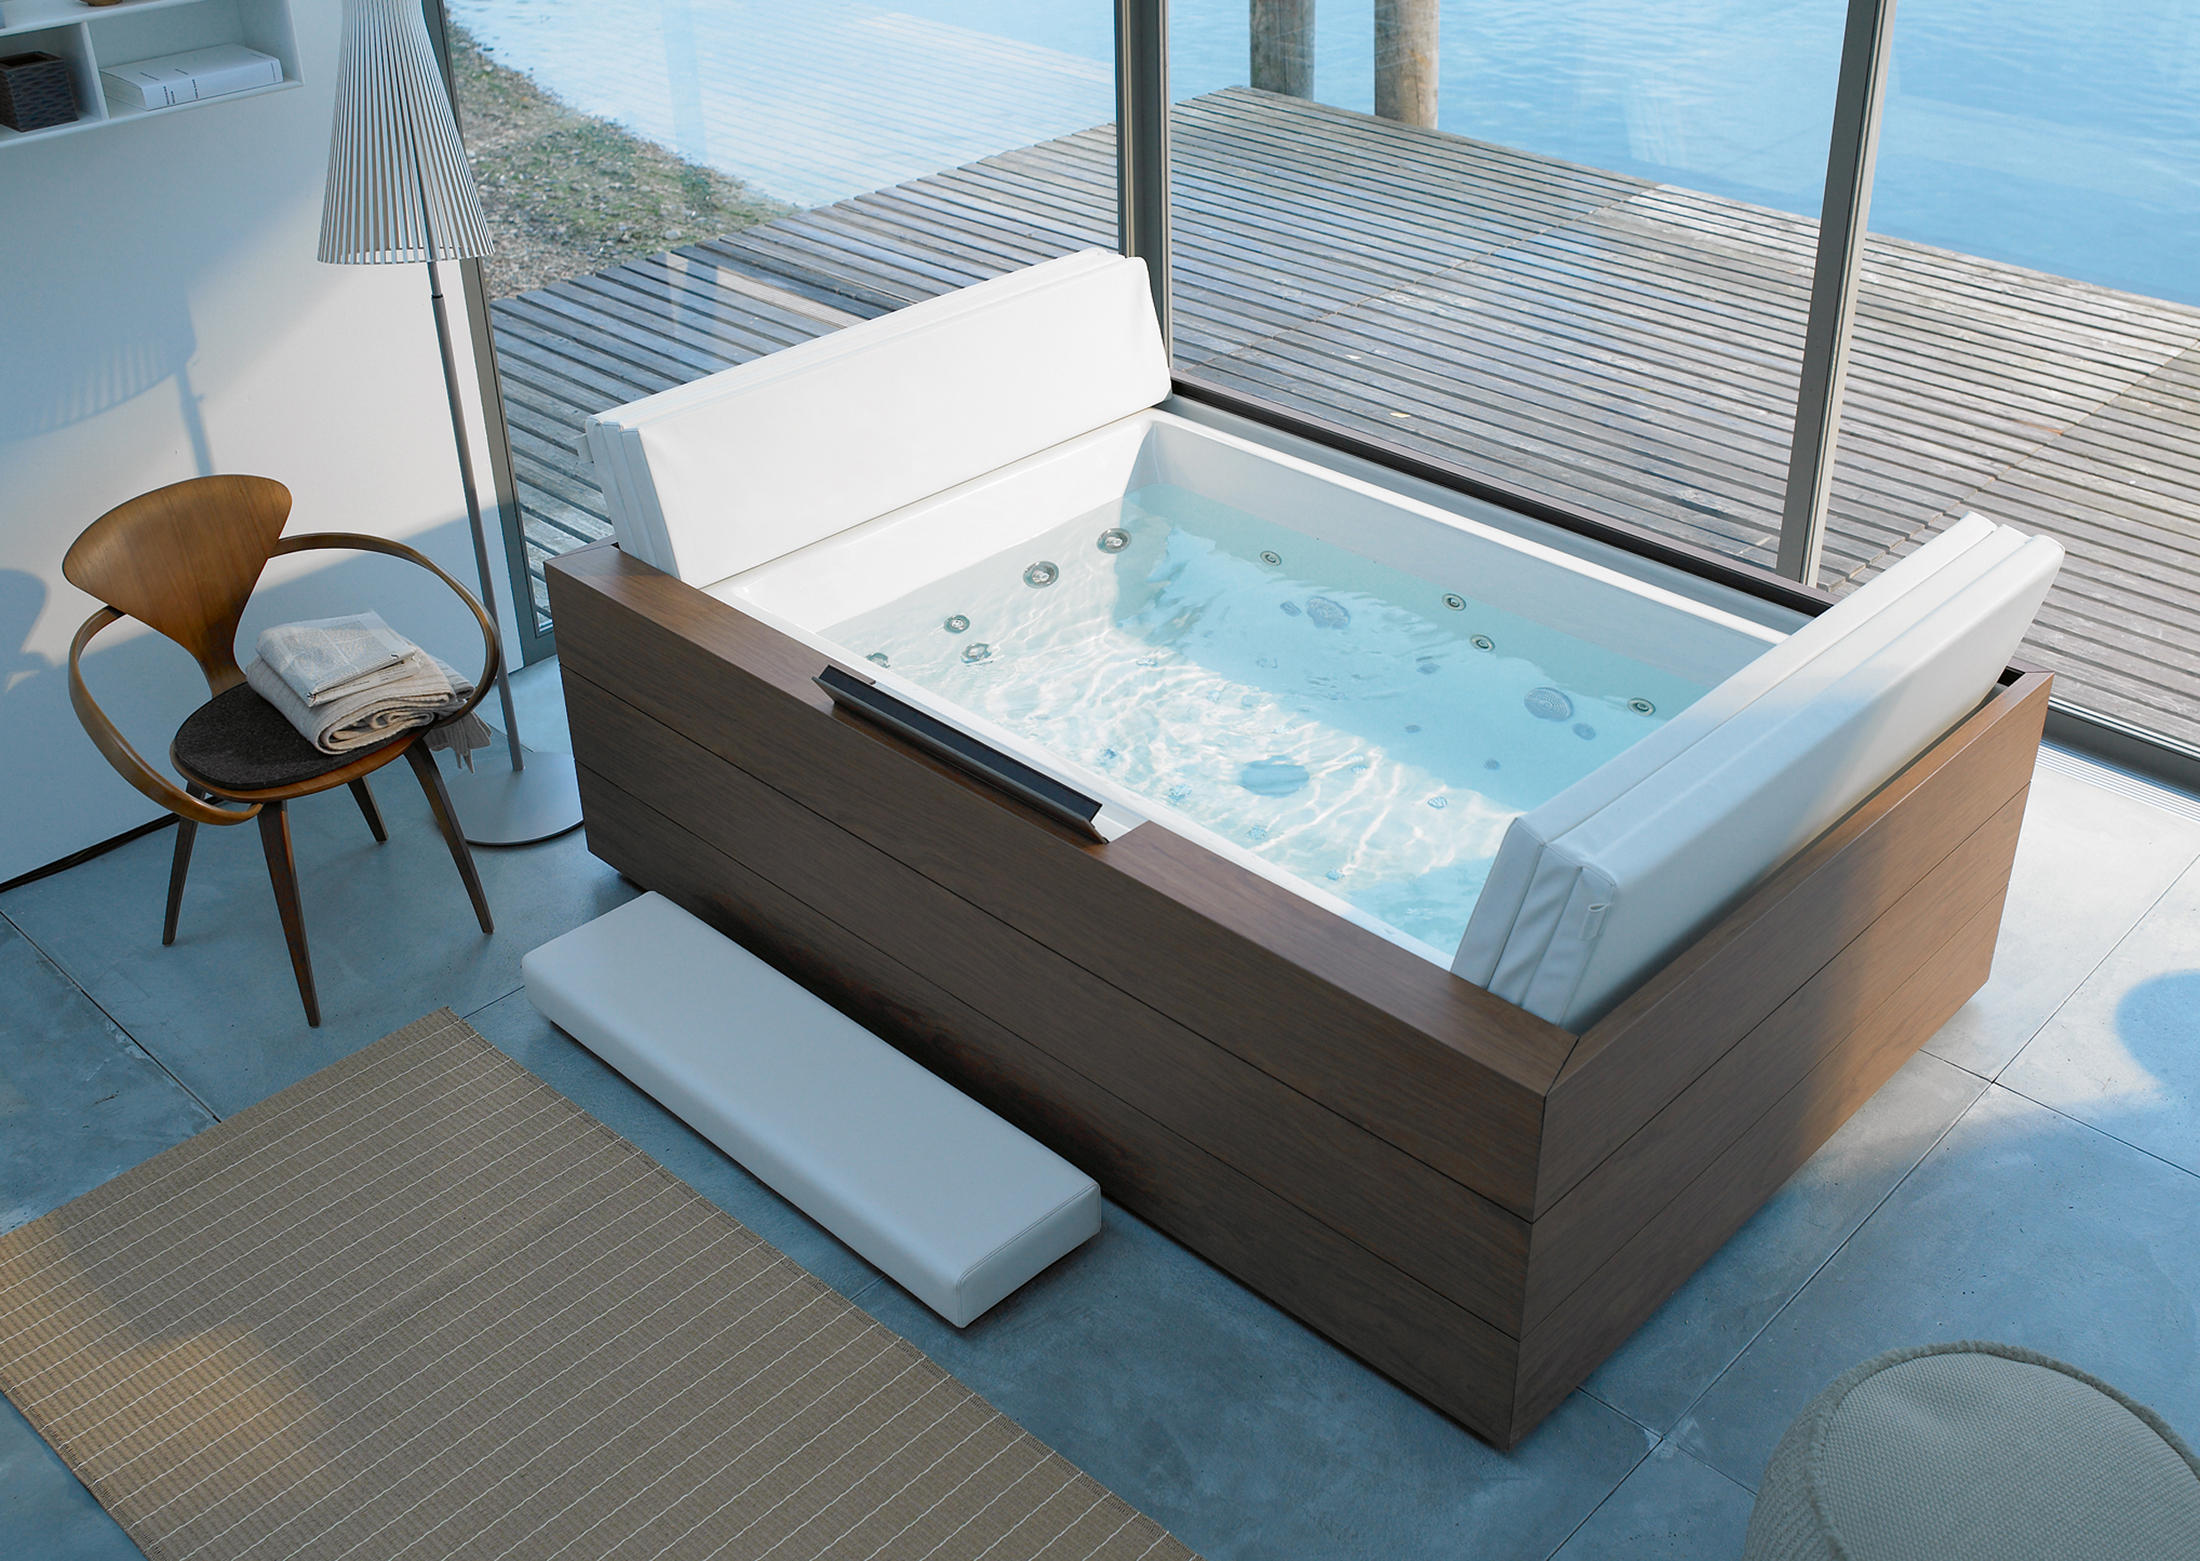 Sundeck vasca vasche ad isola duravit architonic for Sundecks designs